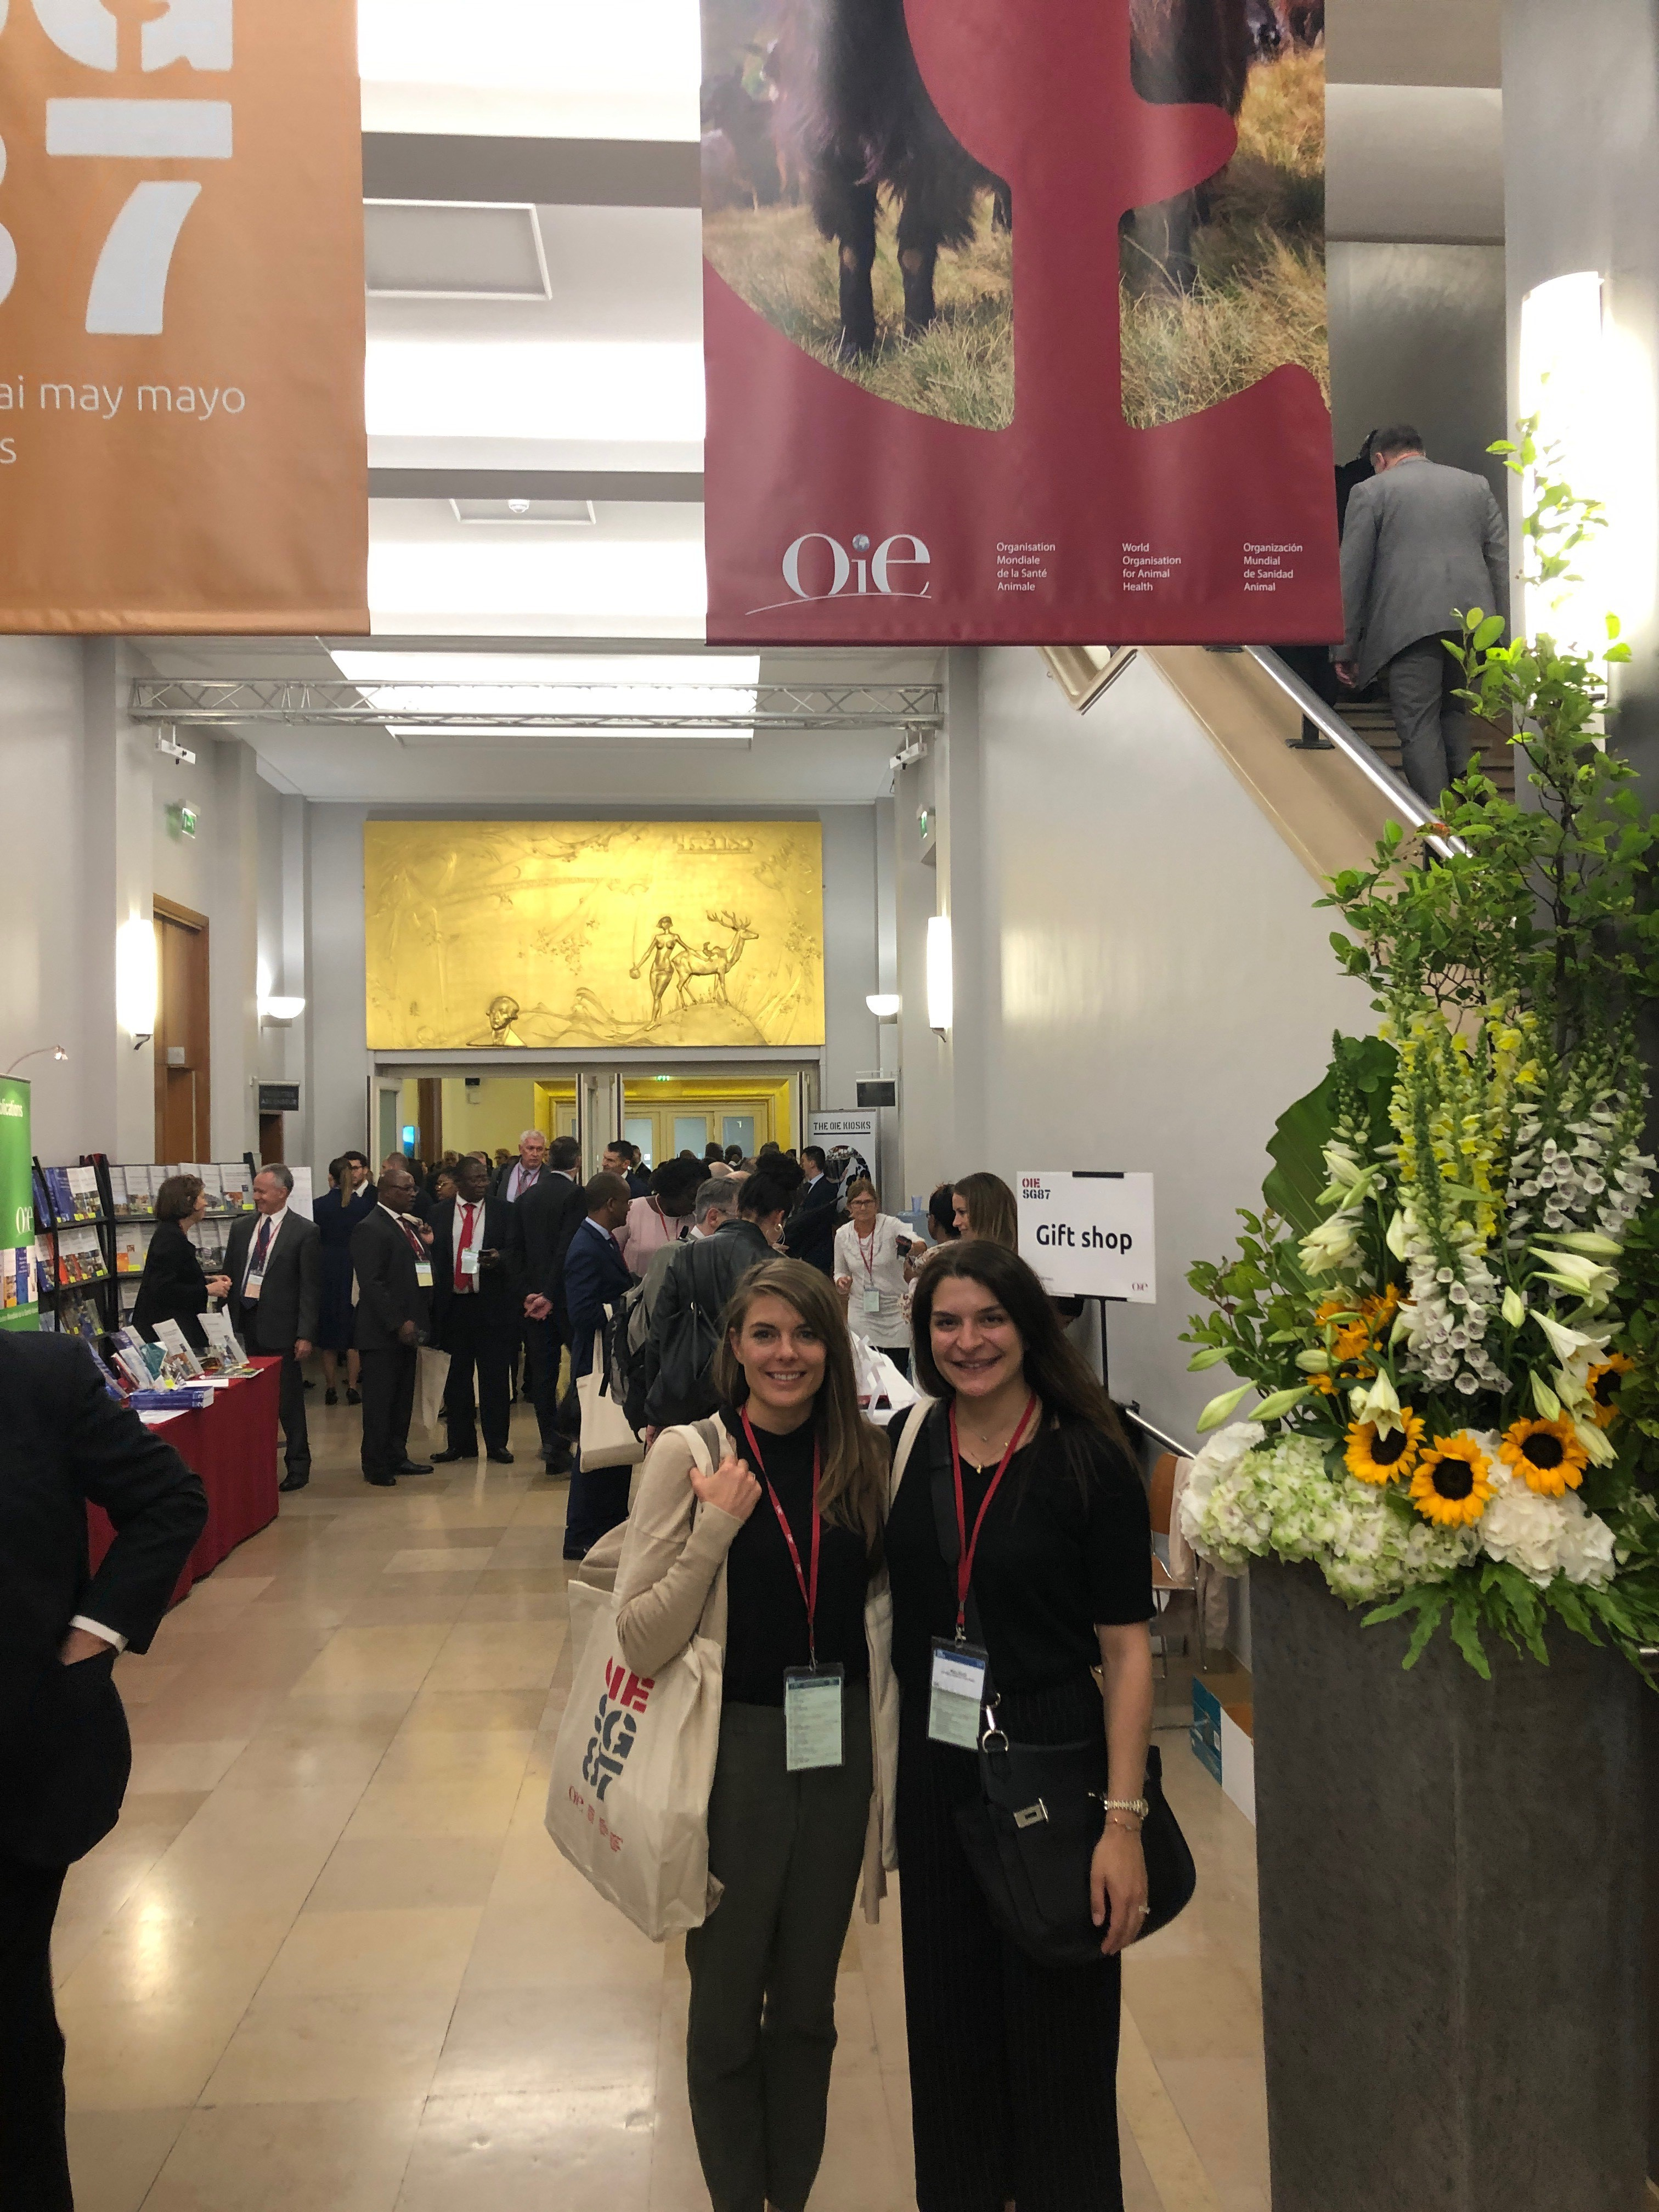 Maha Bazzi, MAPP candidate 2019 (on right) with Jessica Bridgers, MAPP alumna 2014 at OIE Conference in Paris, France